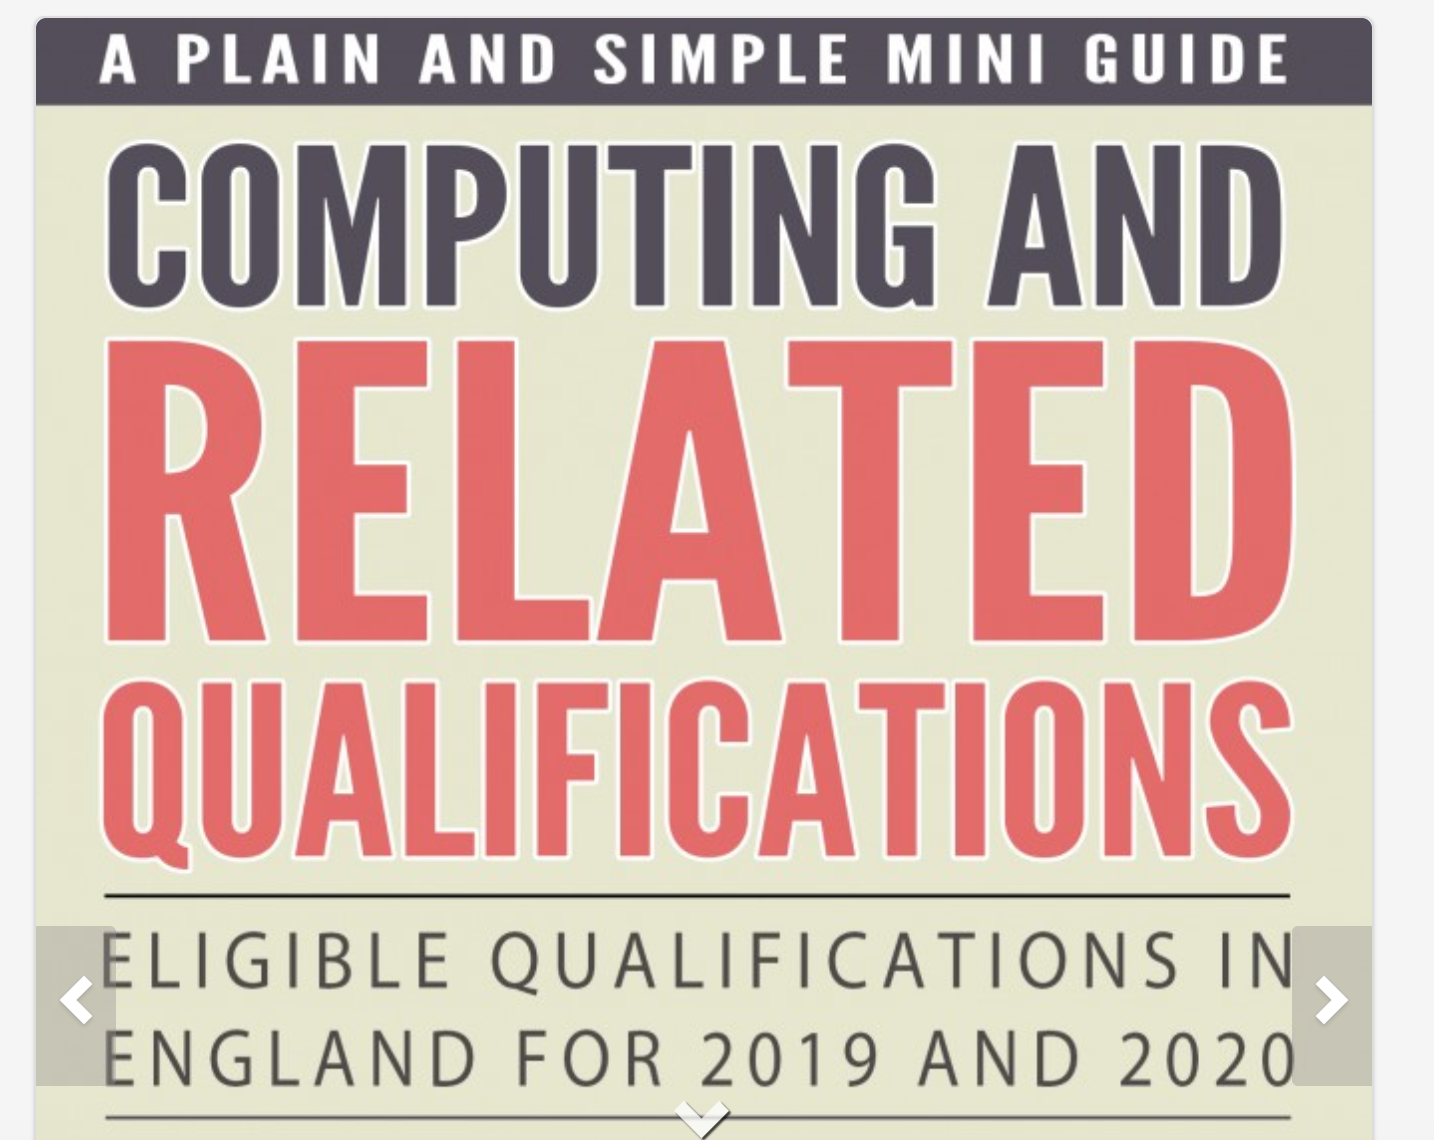 Computing and Related Qualifications